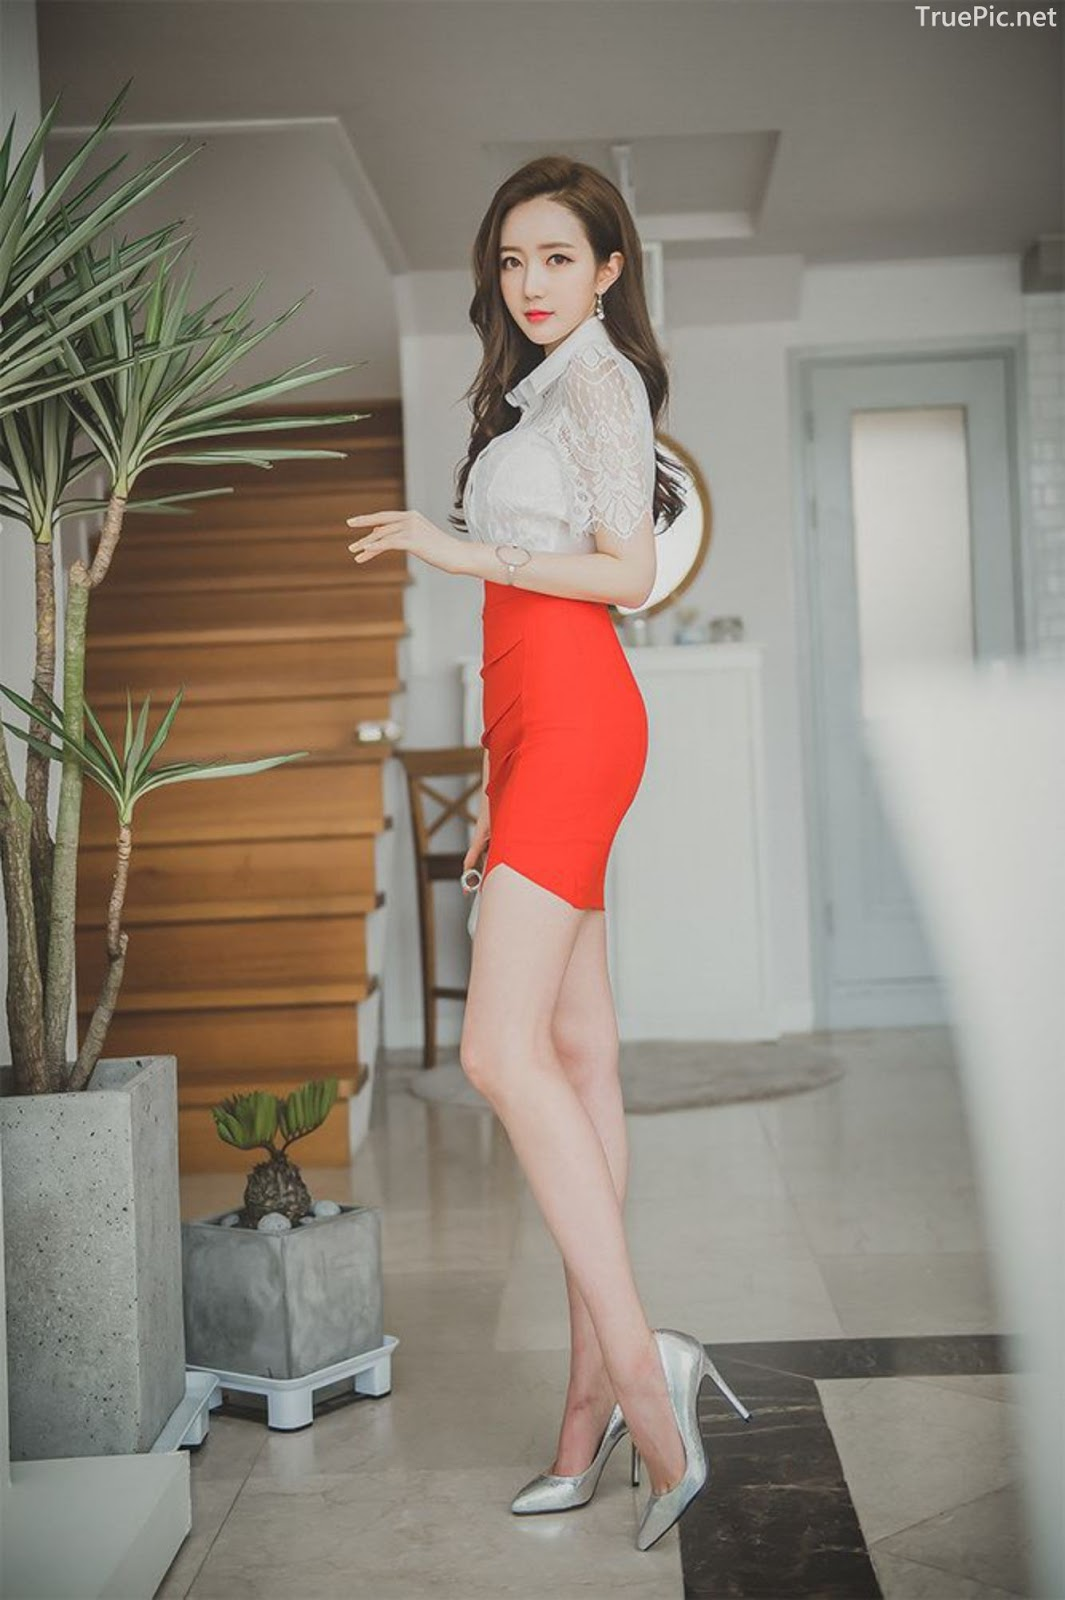 Lee Yeon Jeong - Indoor Photoshoot Collection - Korean fashion model - Part 5 - Picture 2